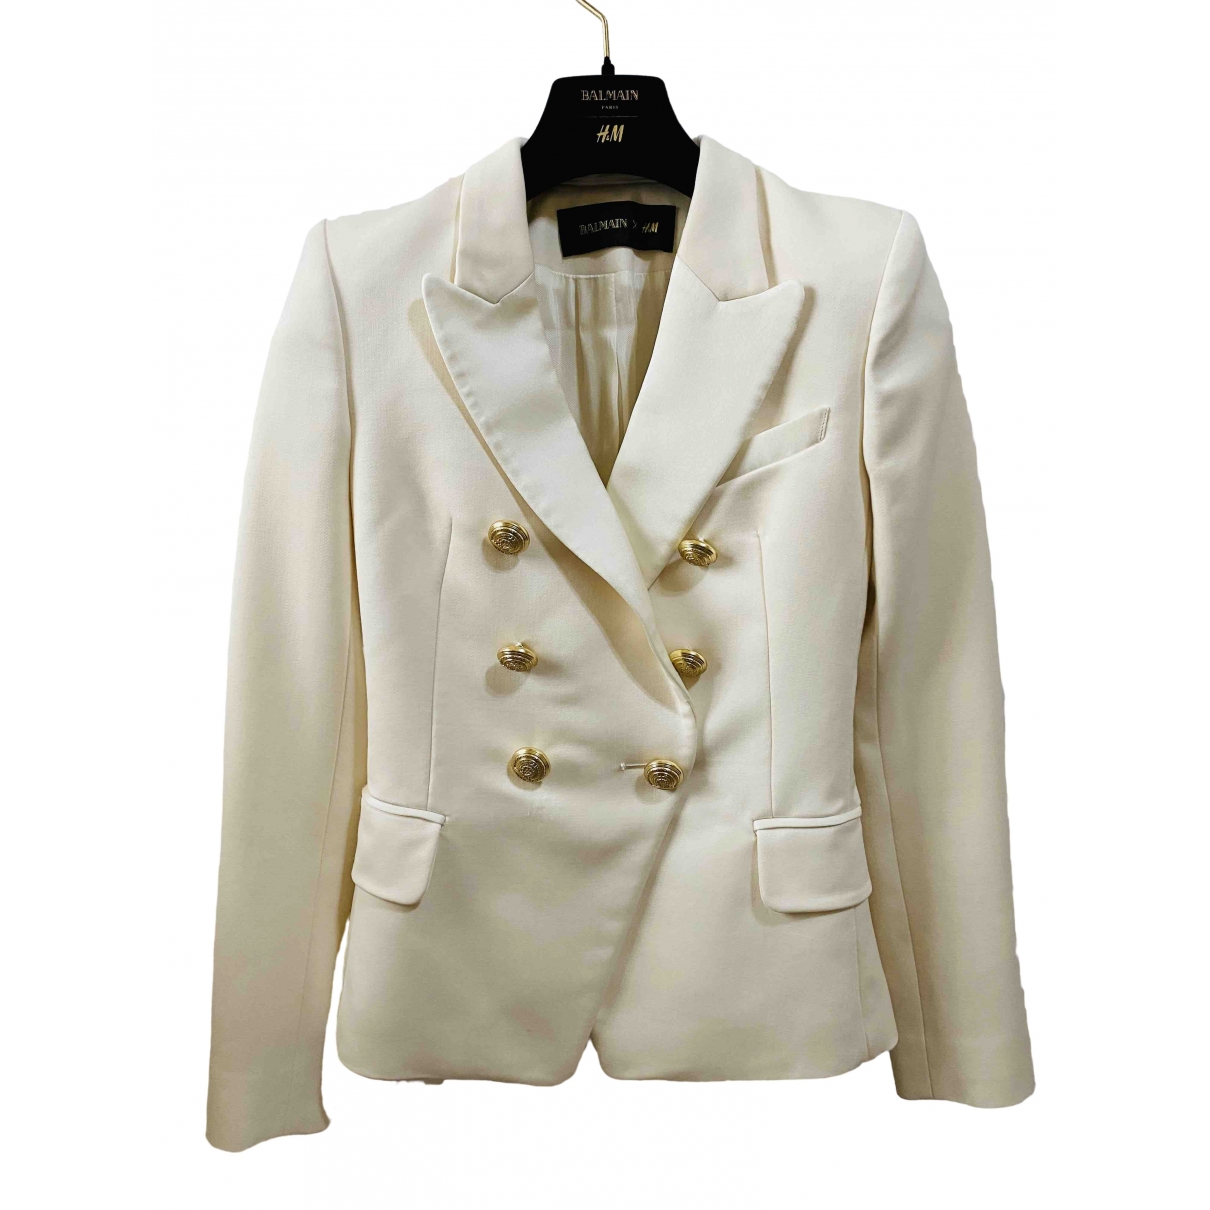 Balmain For H&m \N Jacke in  Weiss Wolle